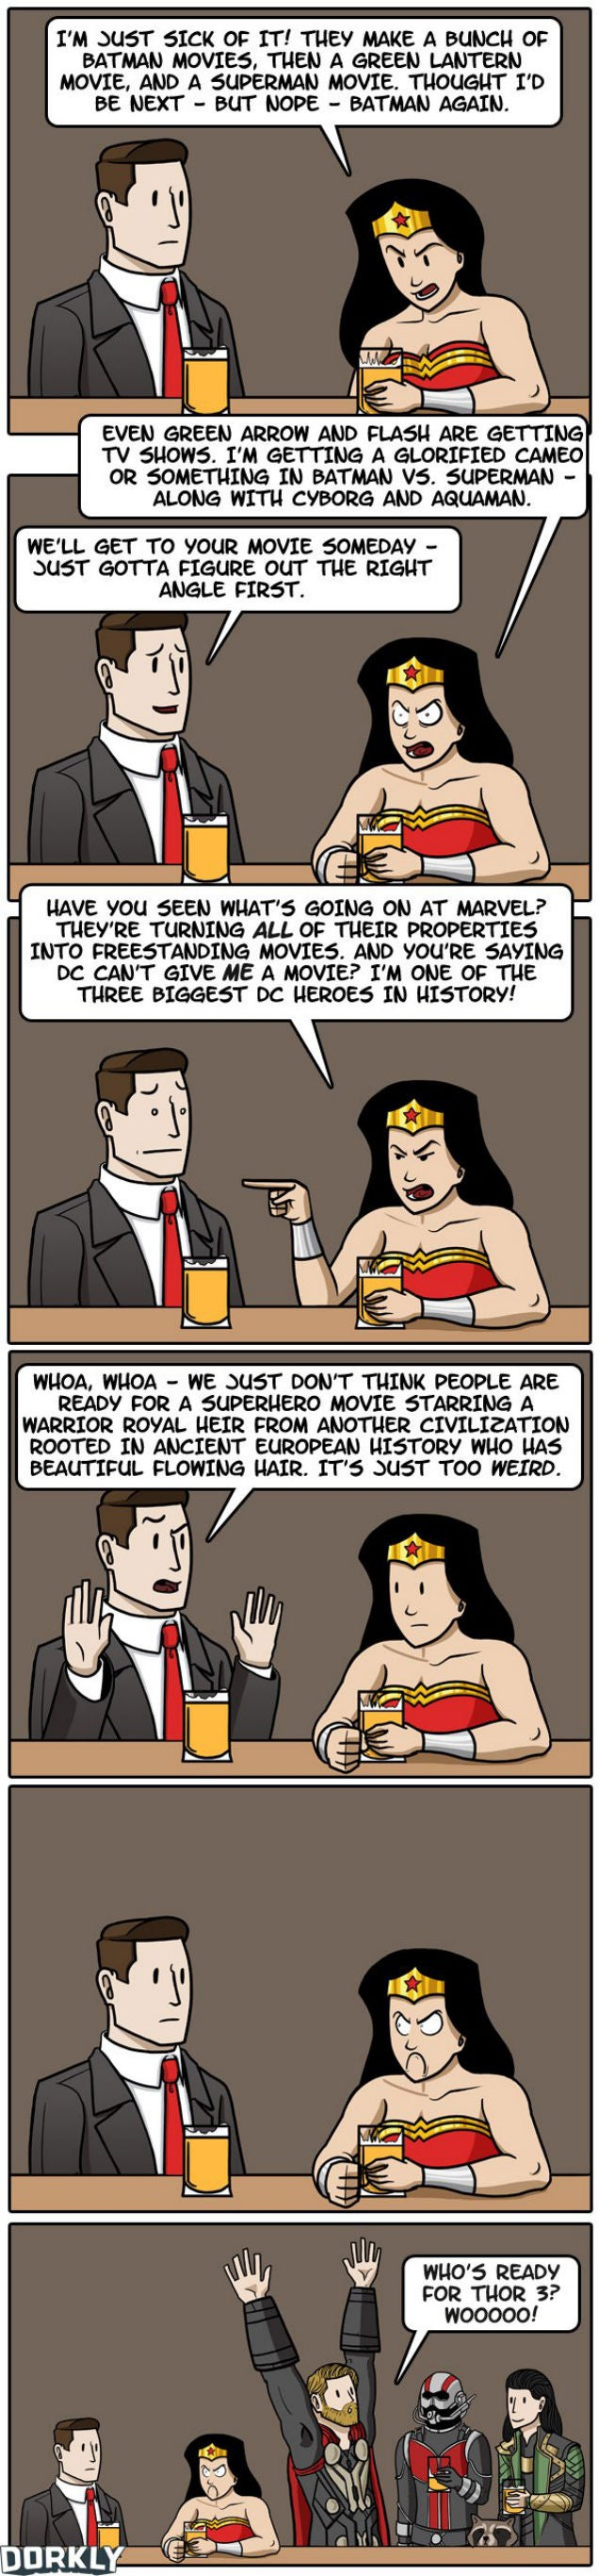 Why There Still Isn't A Wonder Woman Movie